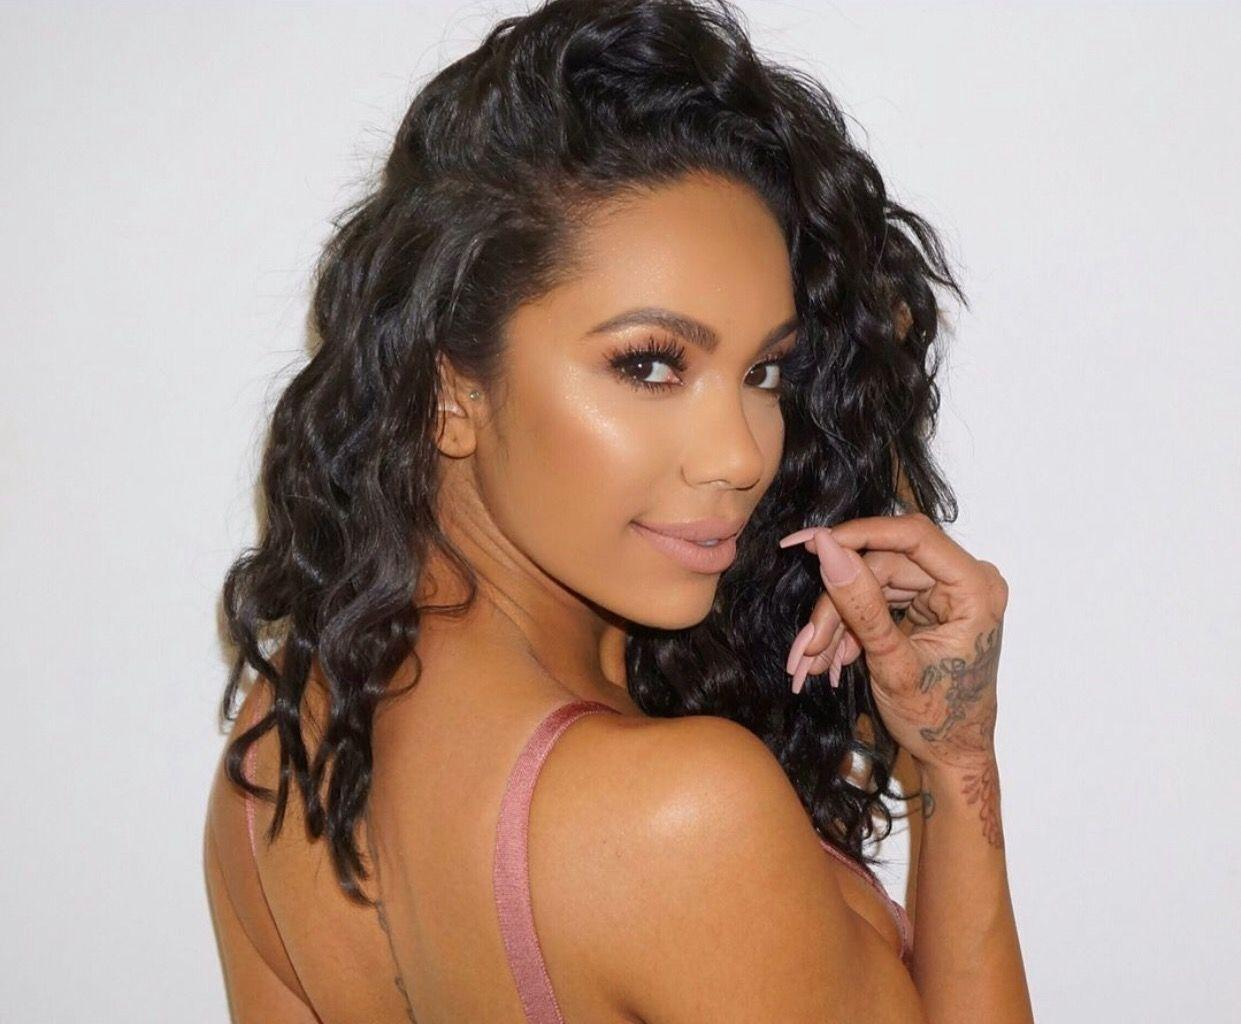 Erica Mena's Fans Are Thankful That She's Not Solely Focused On Her Snapback